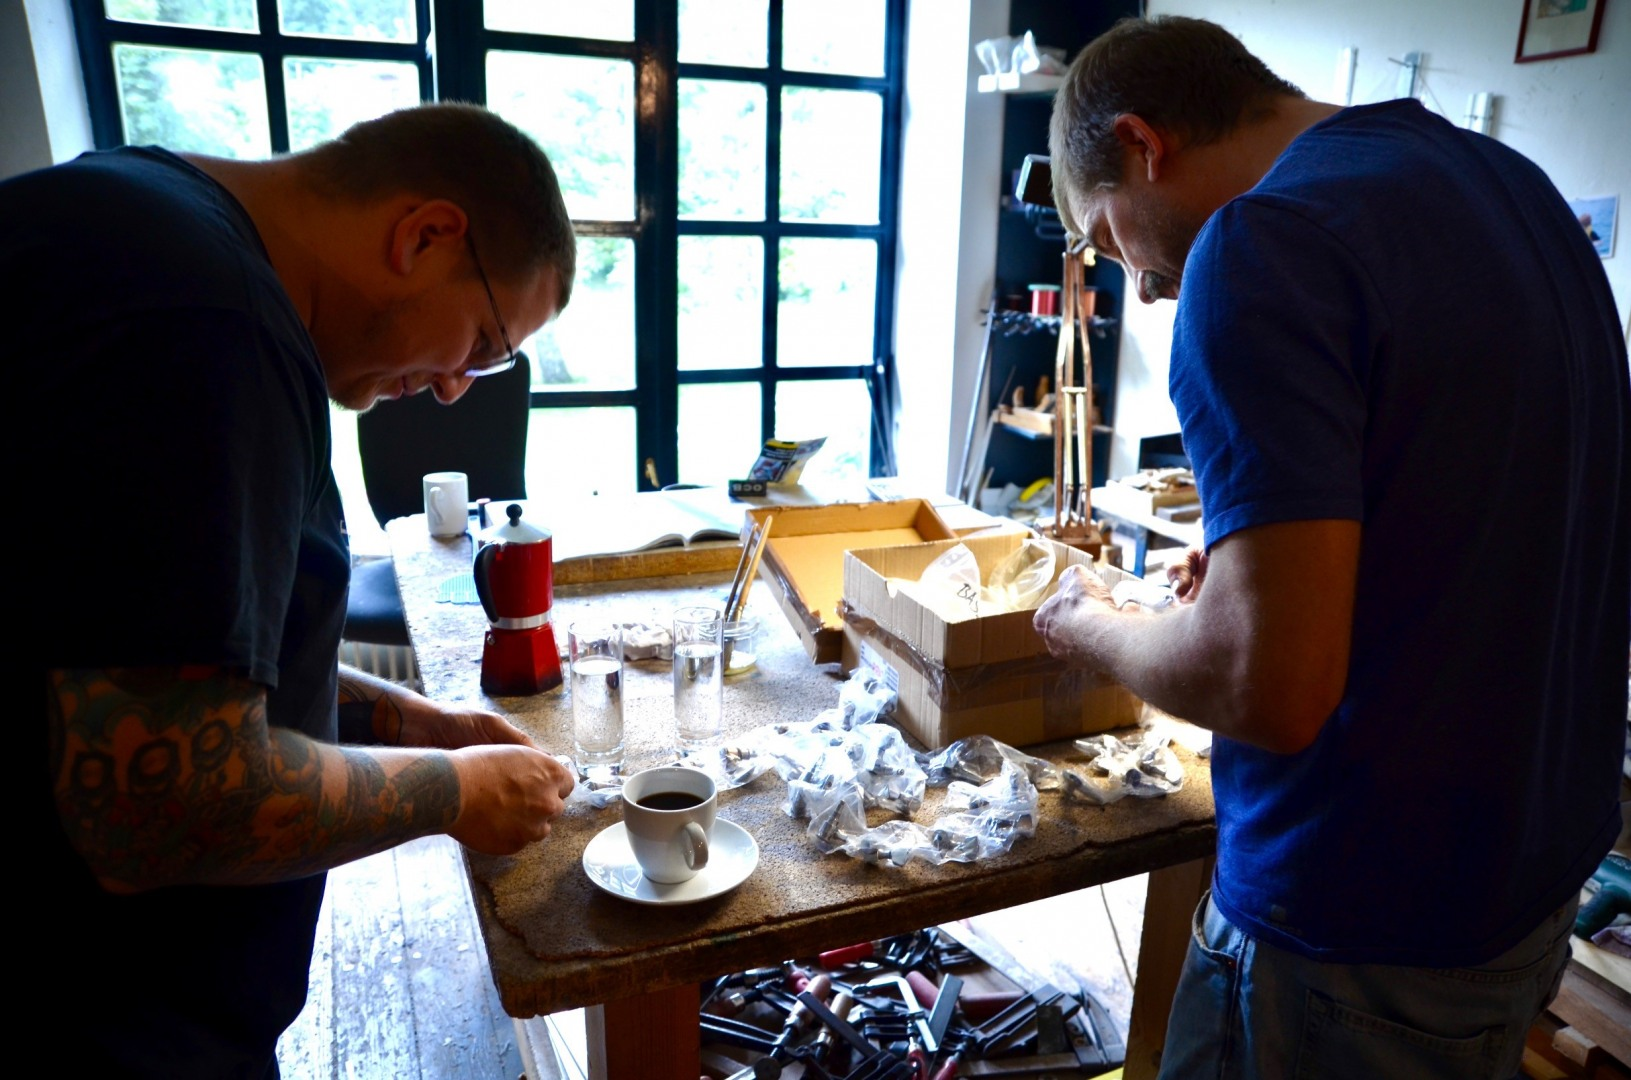 Stefan Huth & Markus Kirchmayr final inspection of new material